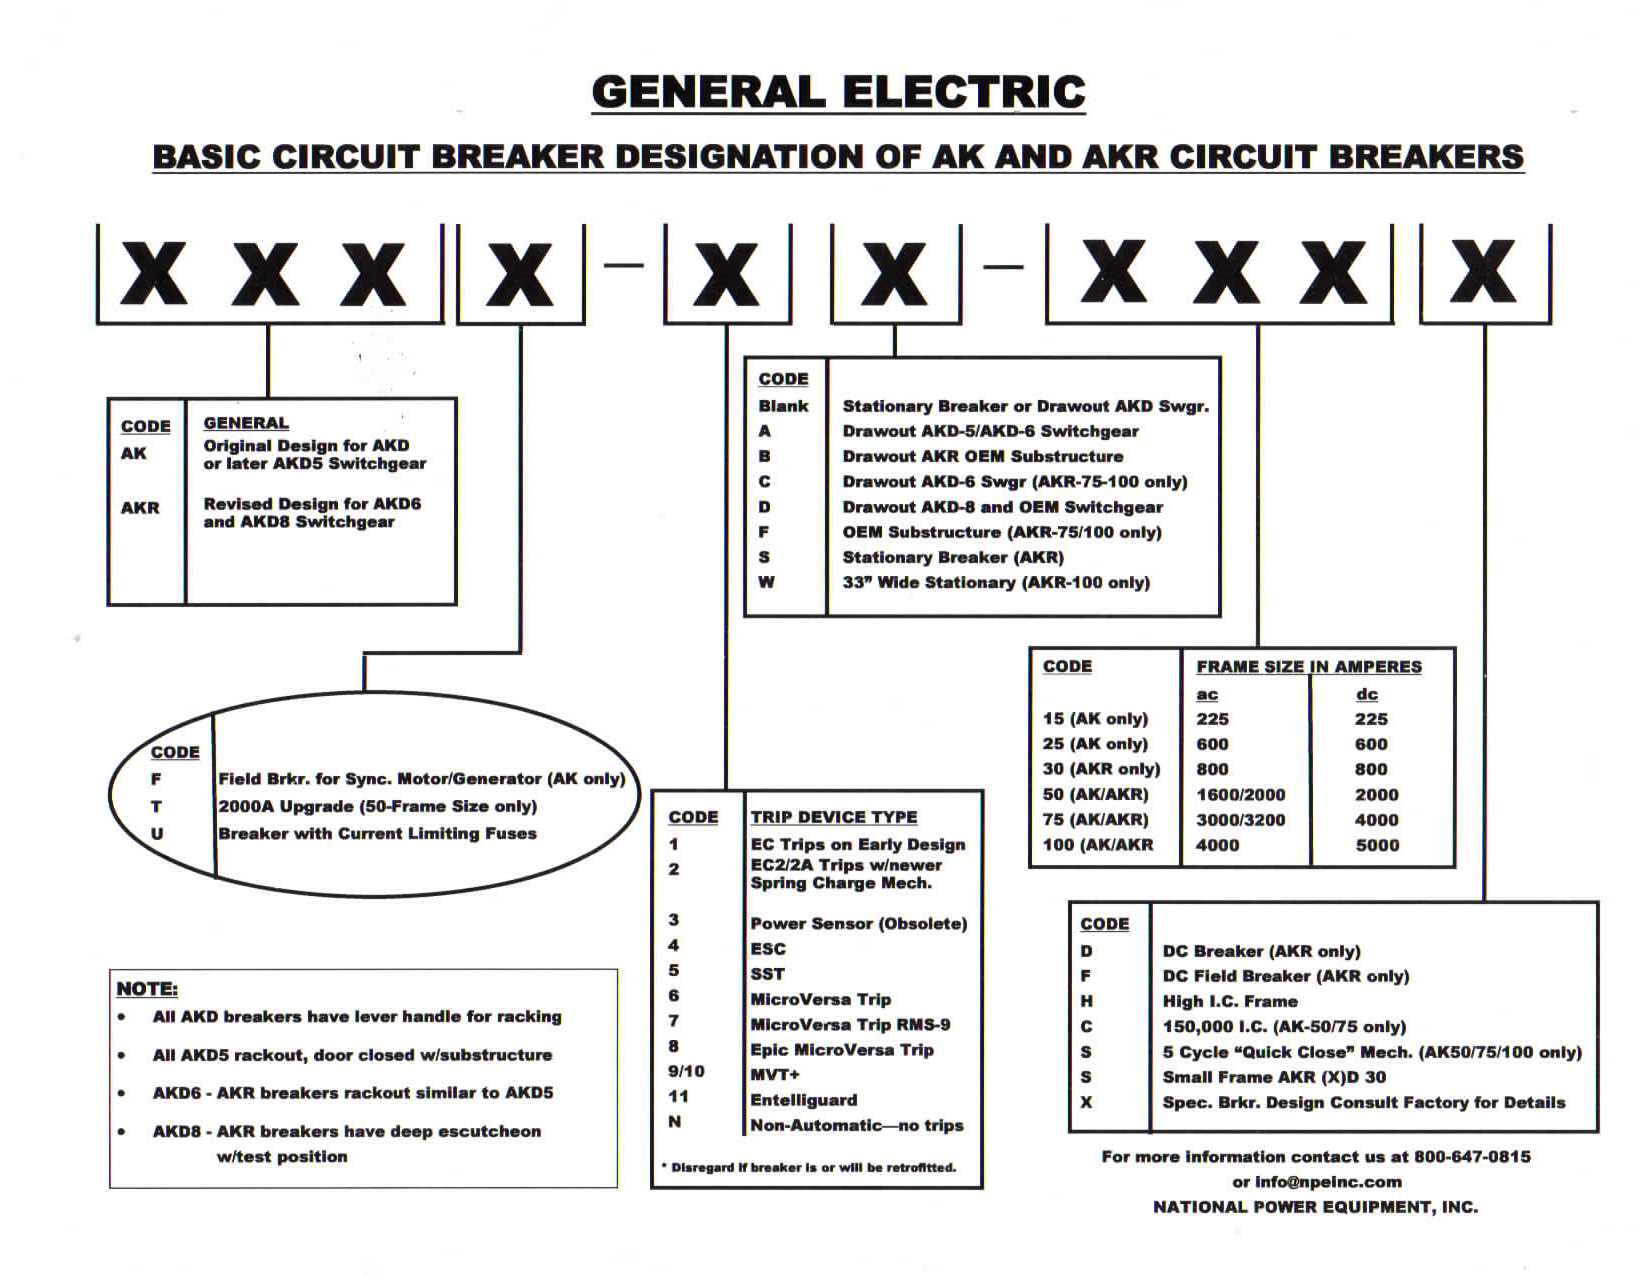 How To Find And Identify Old Or Obsolete Ge General Electric 100 Amp Breaker Box Wiring Diagram This Guide Will Help You Most Of The Options Built In Your From Factory Which If Any Need Be Changed Upgraded